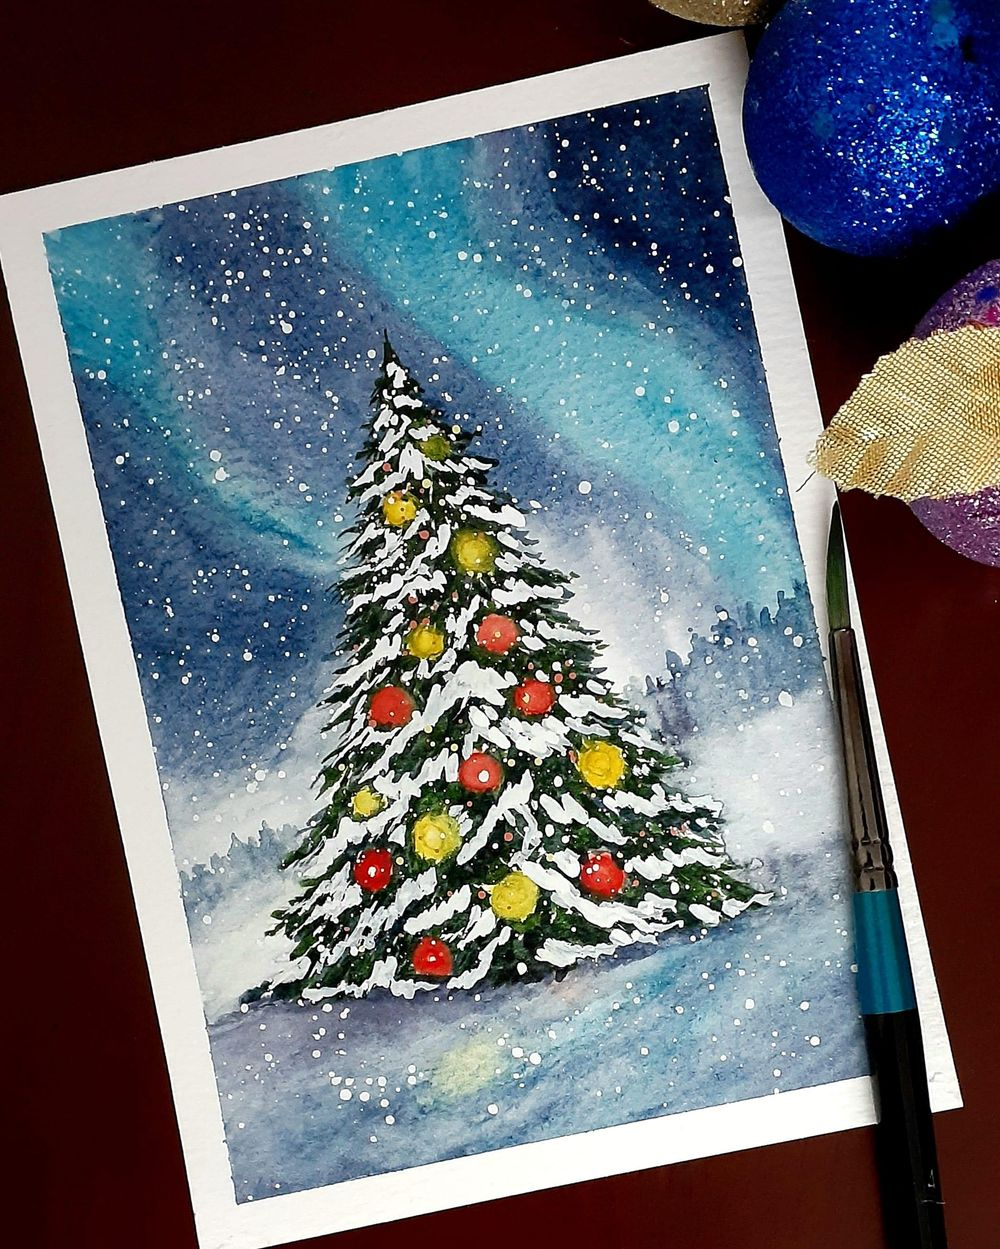 Countdown to Christmas with 24 Beautiful Paintings - image 2 - student project